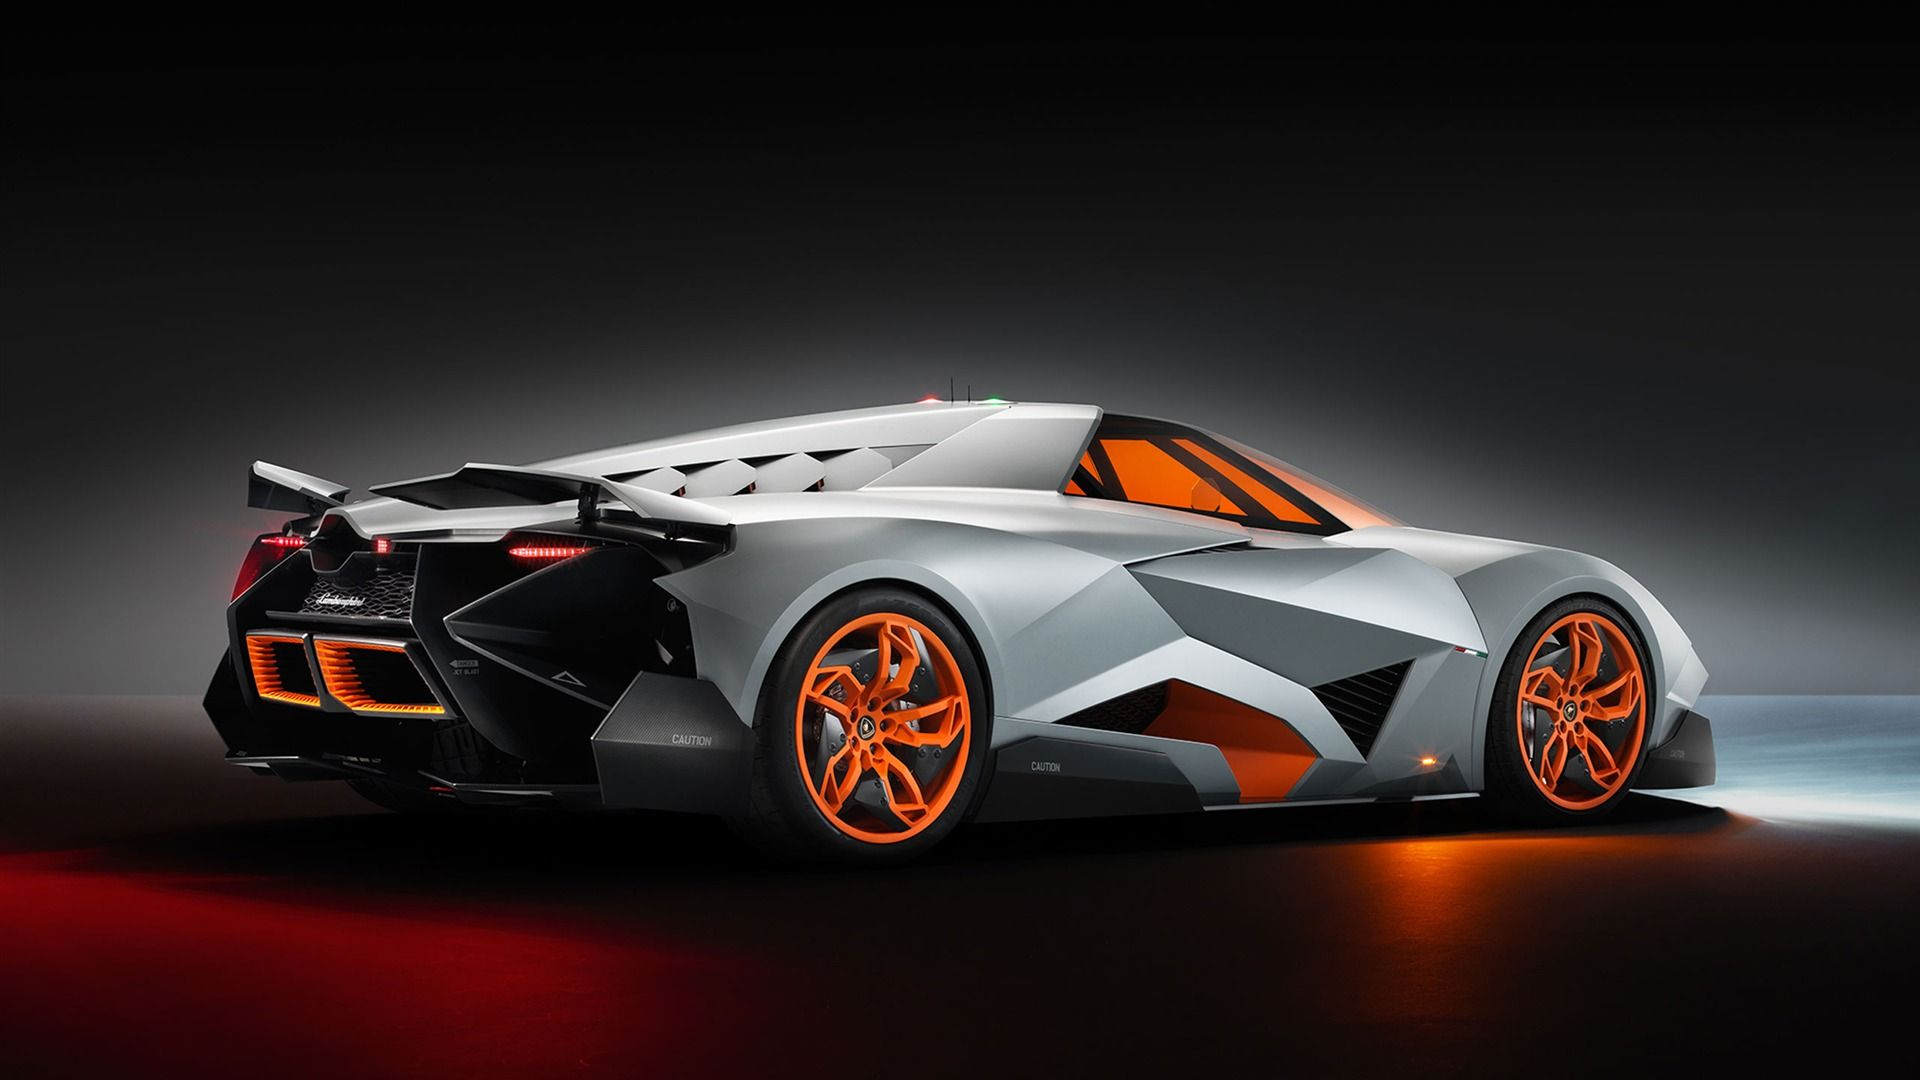 Full Hd 1080p Cars Wallpapers Desktop Backgrounds Hd Pictures